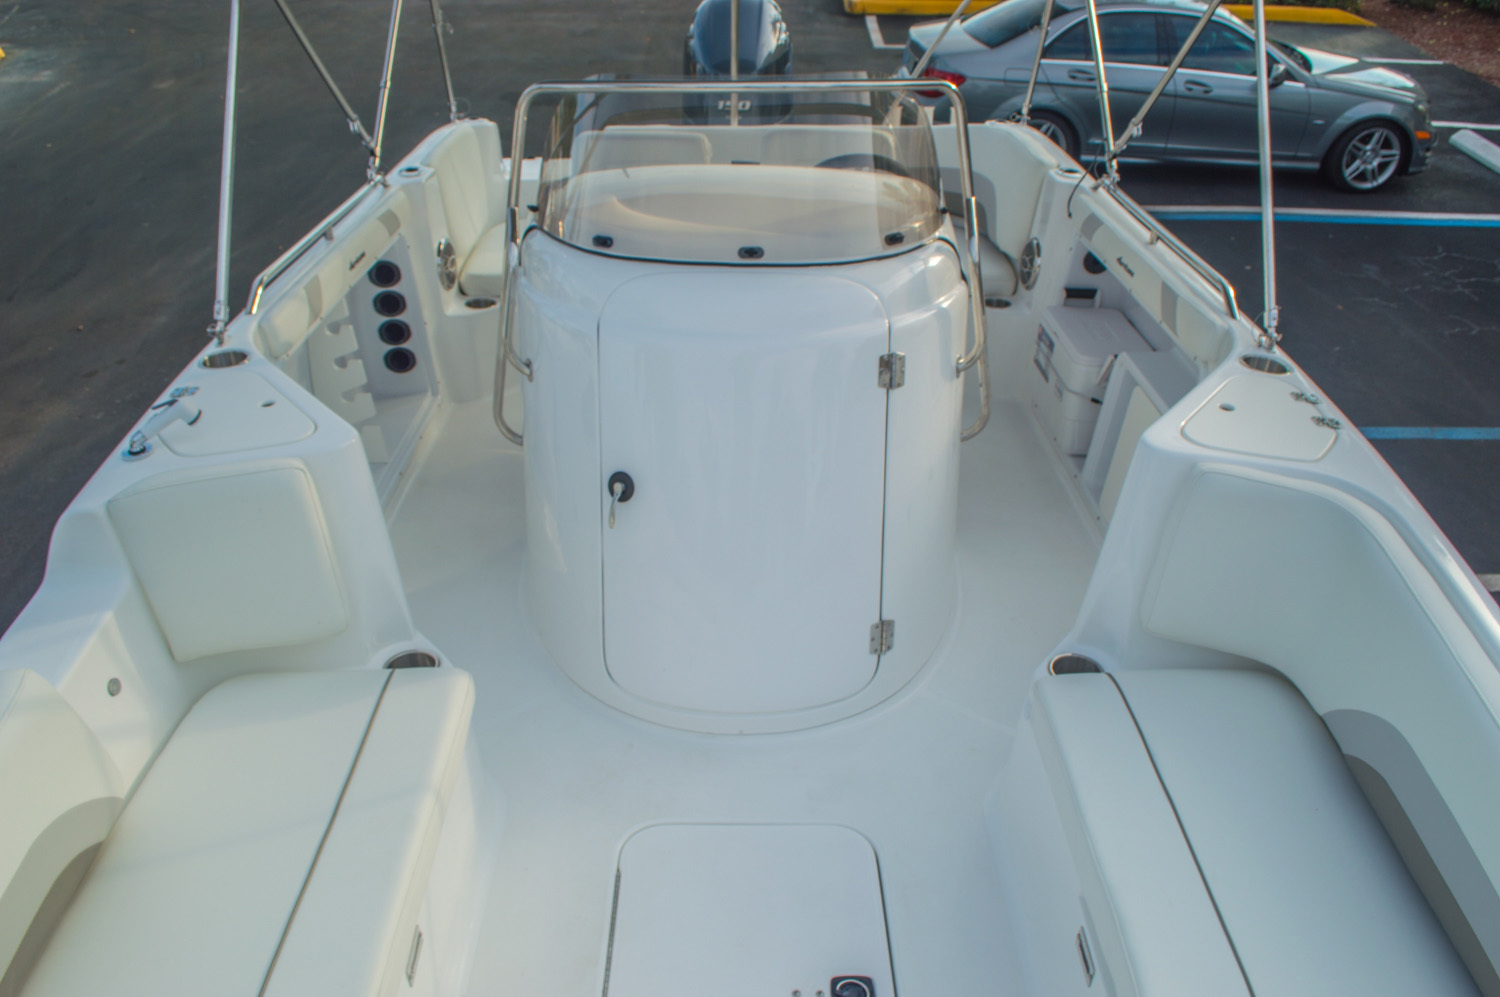 Thumbnail 53 for New 2016 Hurricane CC211 Center Consle boat for sale in West Palm Beach, FL